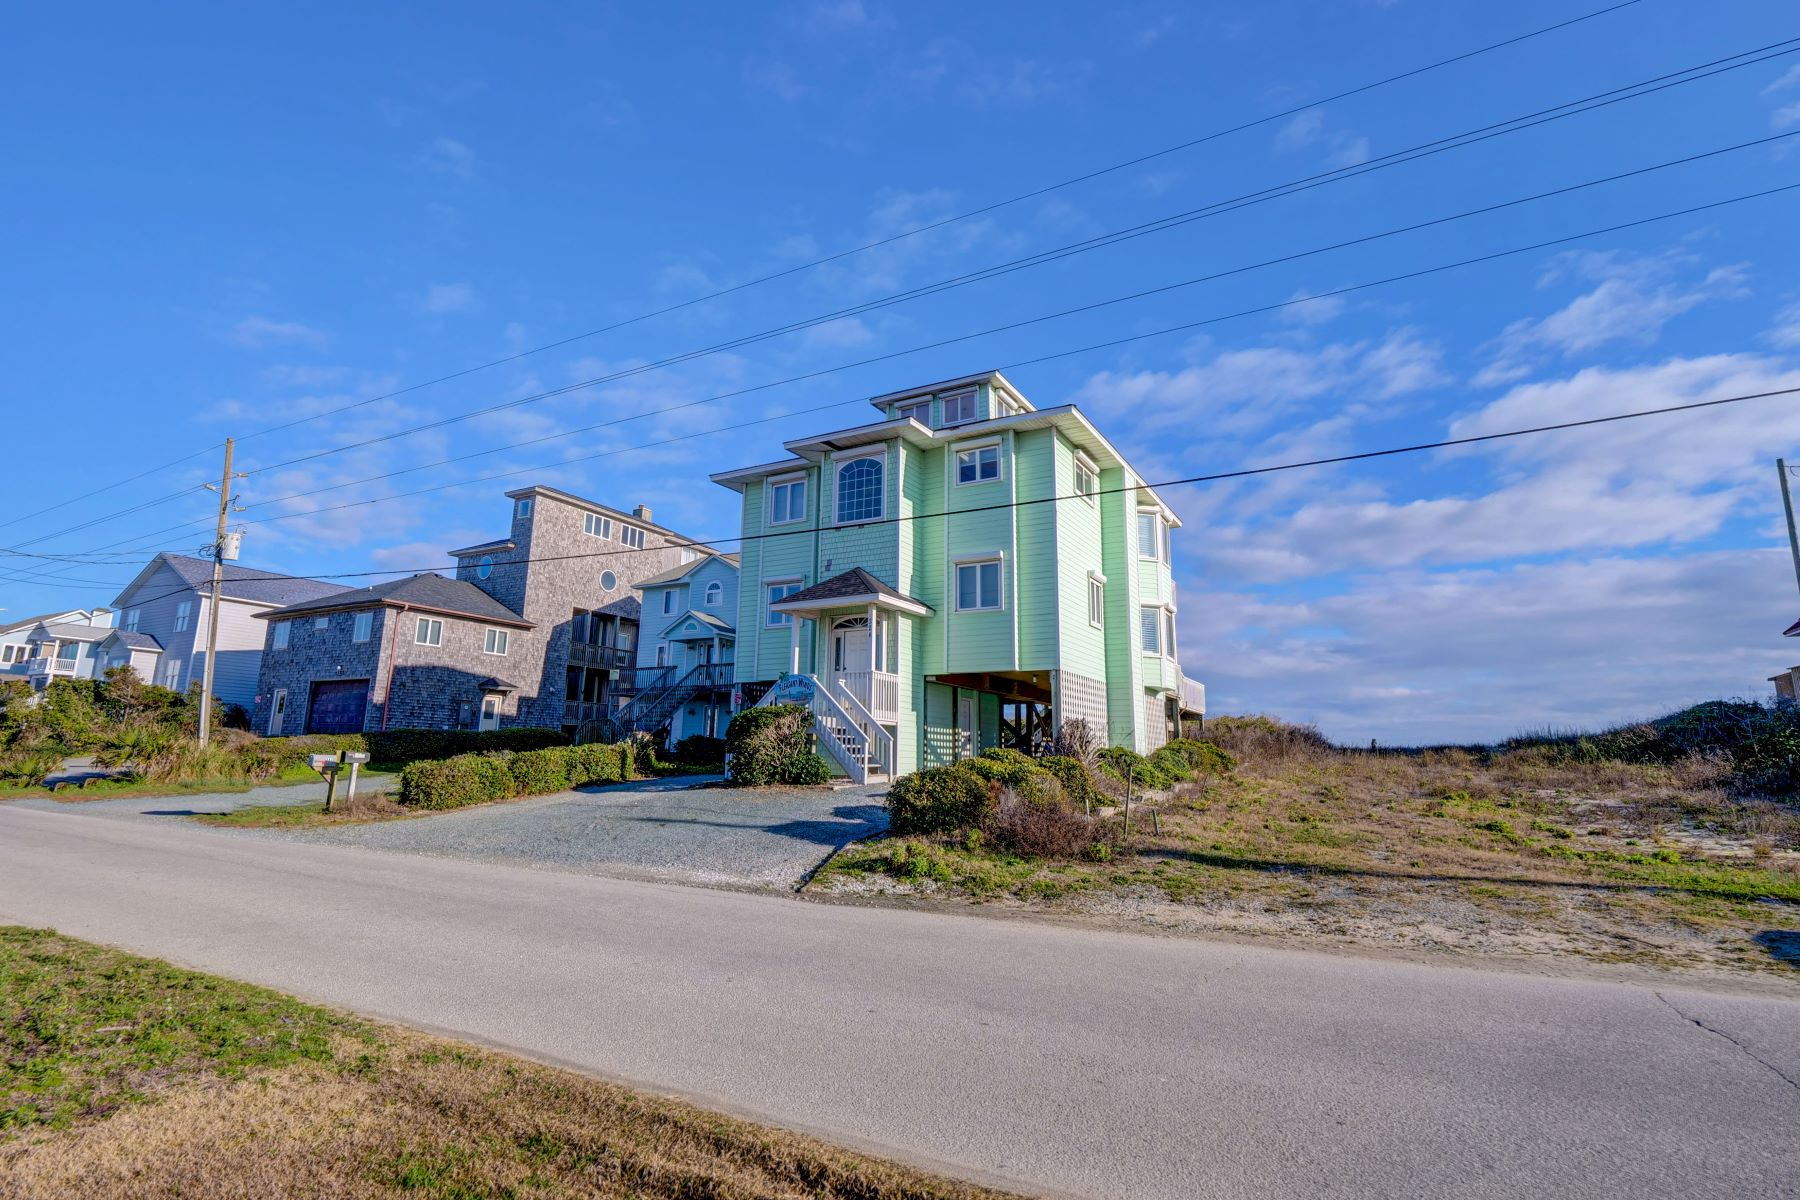 Single Family Homes for Sale at Oceanfront Family Beach Home 328 N Shore Drive Surf City, North Carolina 28445 United States